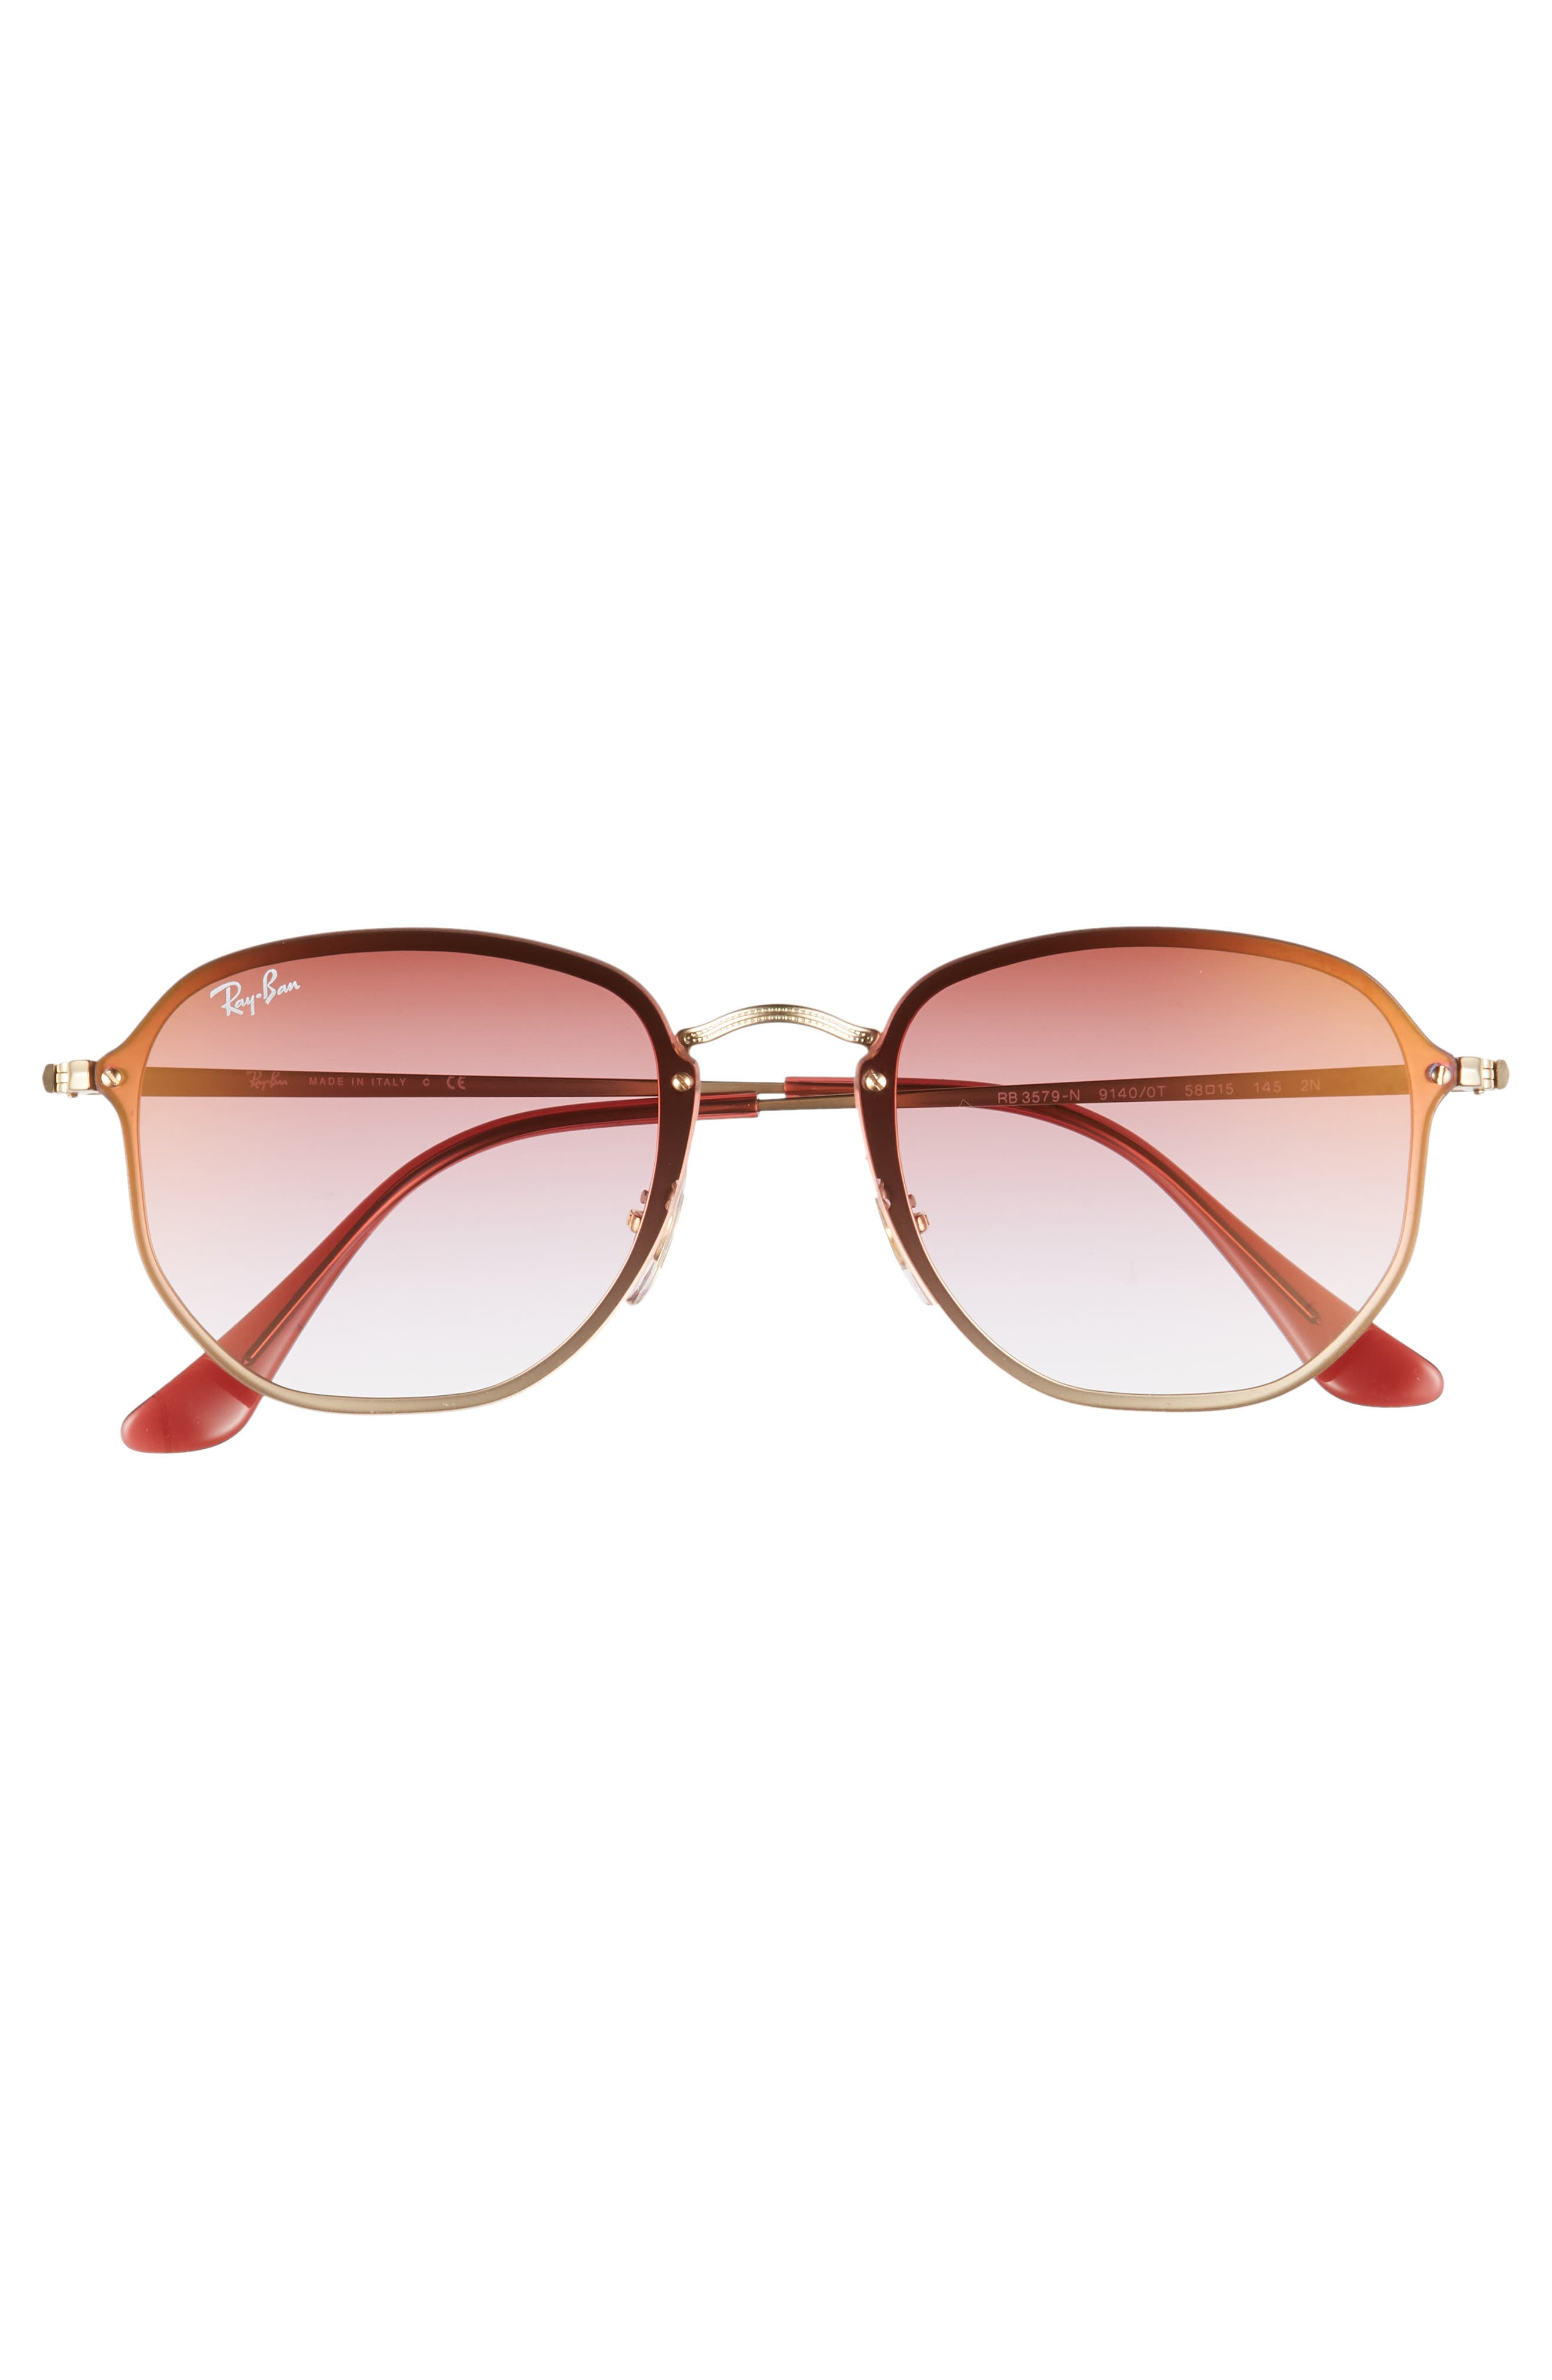 58mm Round Sunglasses,                             Alternate thumbnail 3, color,                             GOLD/ BROWN PINK GRADIENT